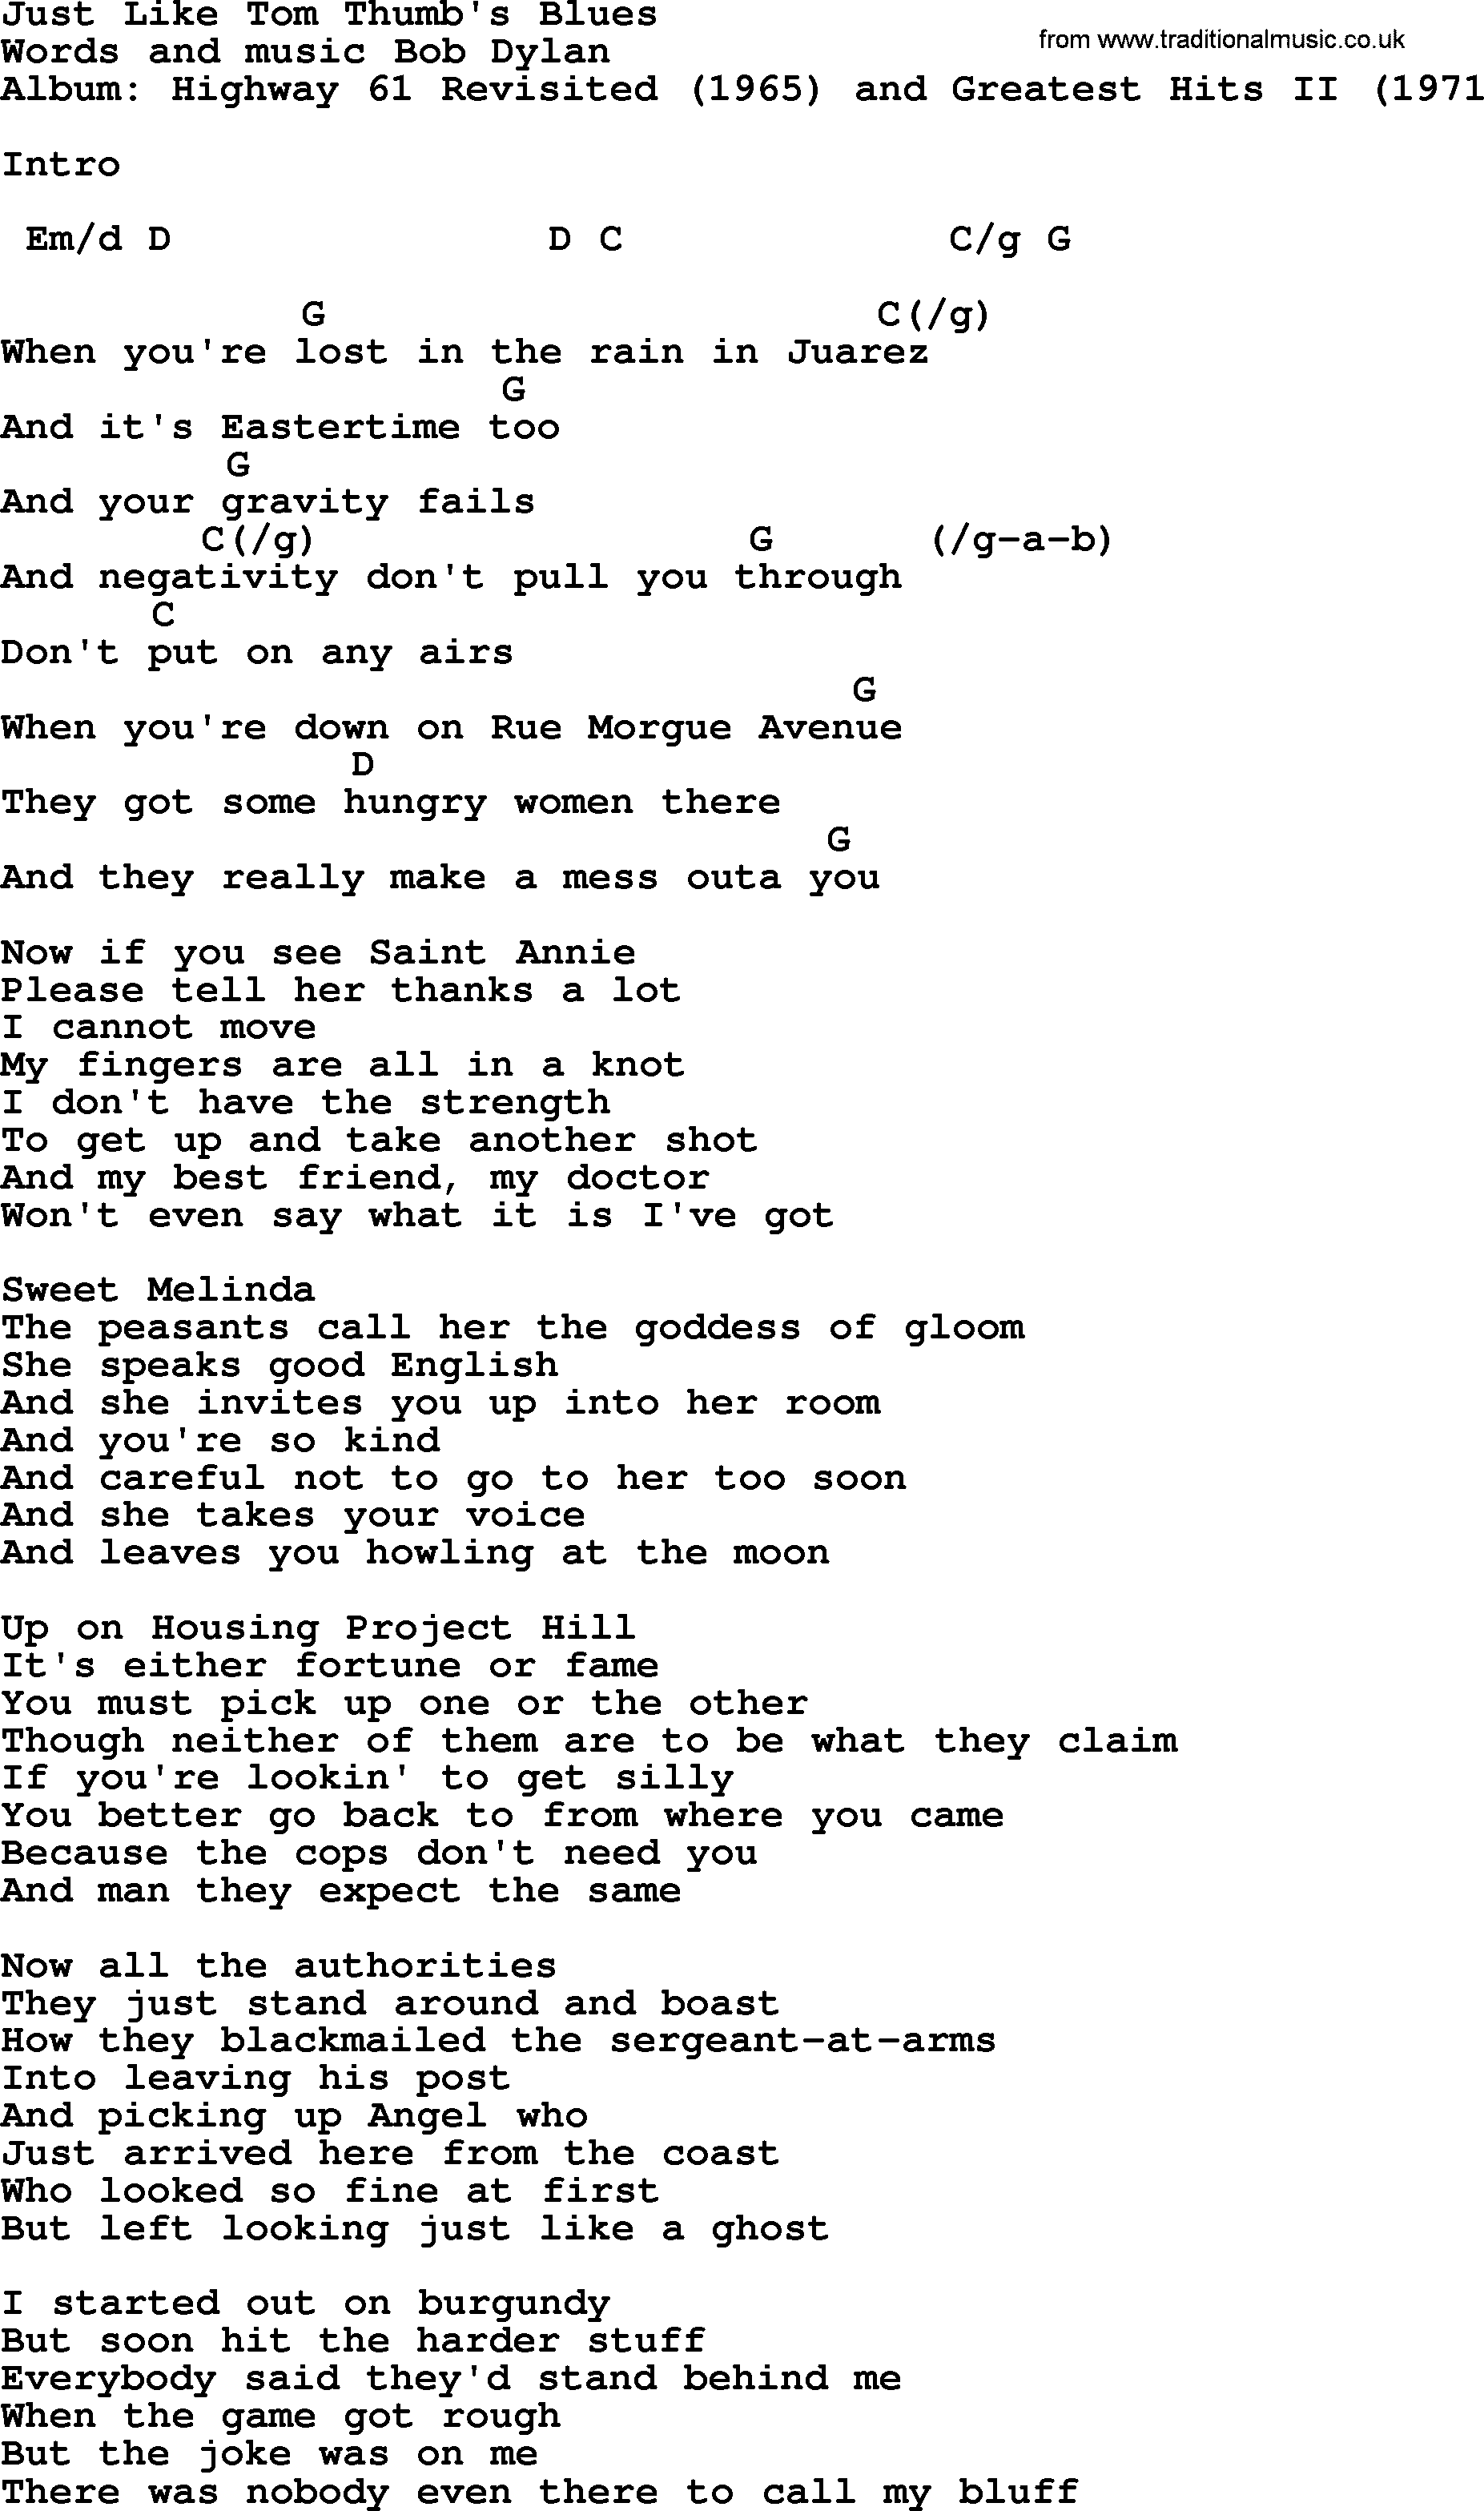 Bob dylan song just like tom thumbs blues lyrics and chords bob dylan song lyrics with chords just like tom thumbs blues hexwebz Image collections